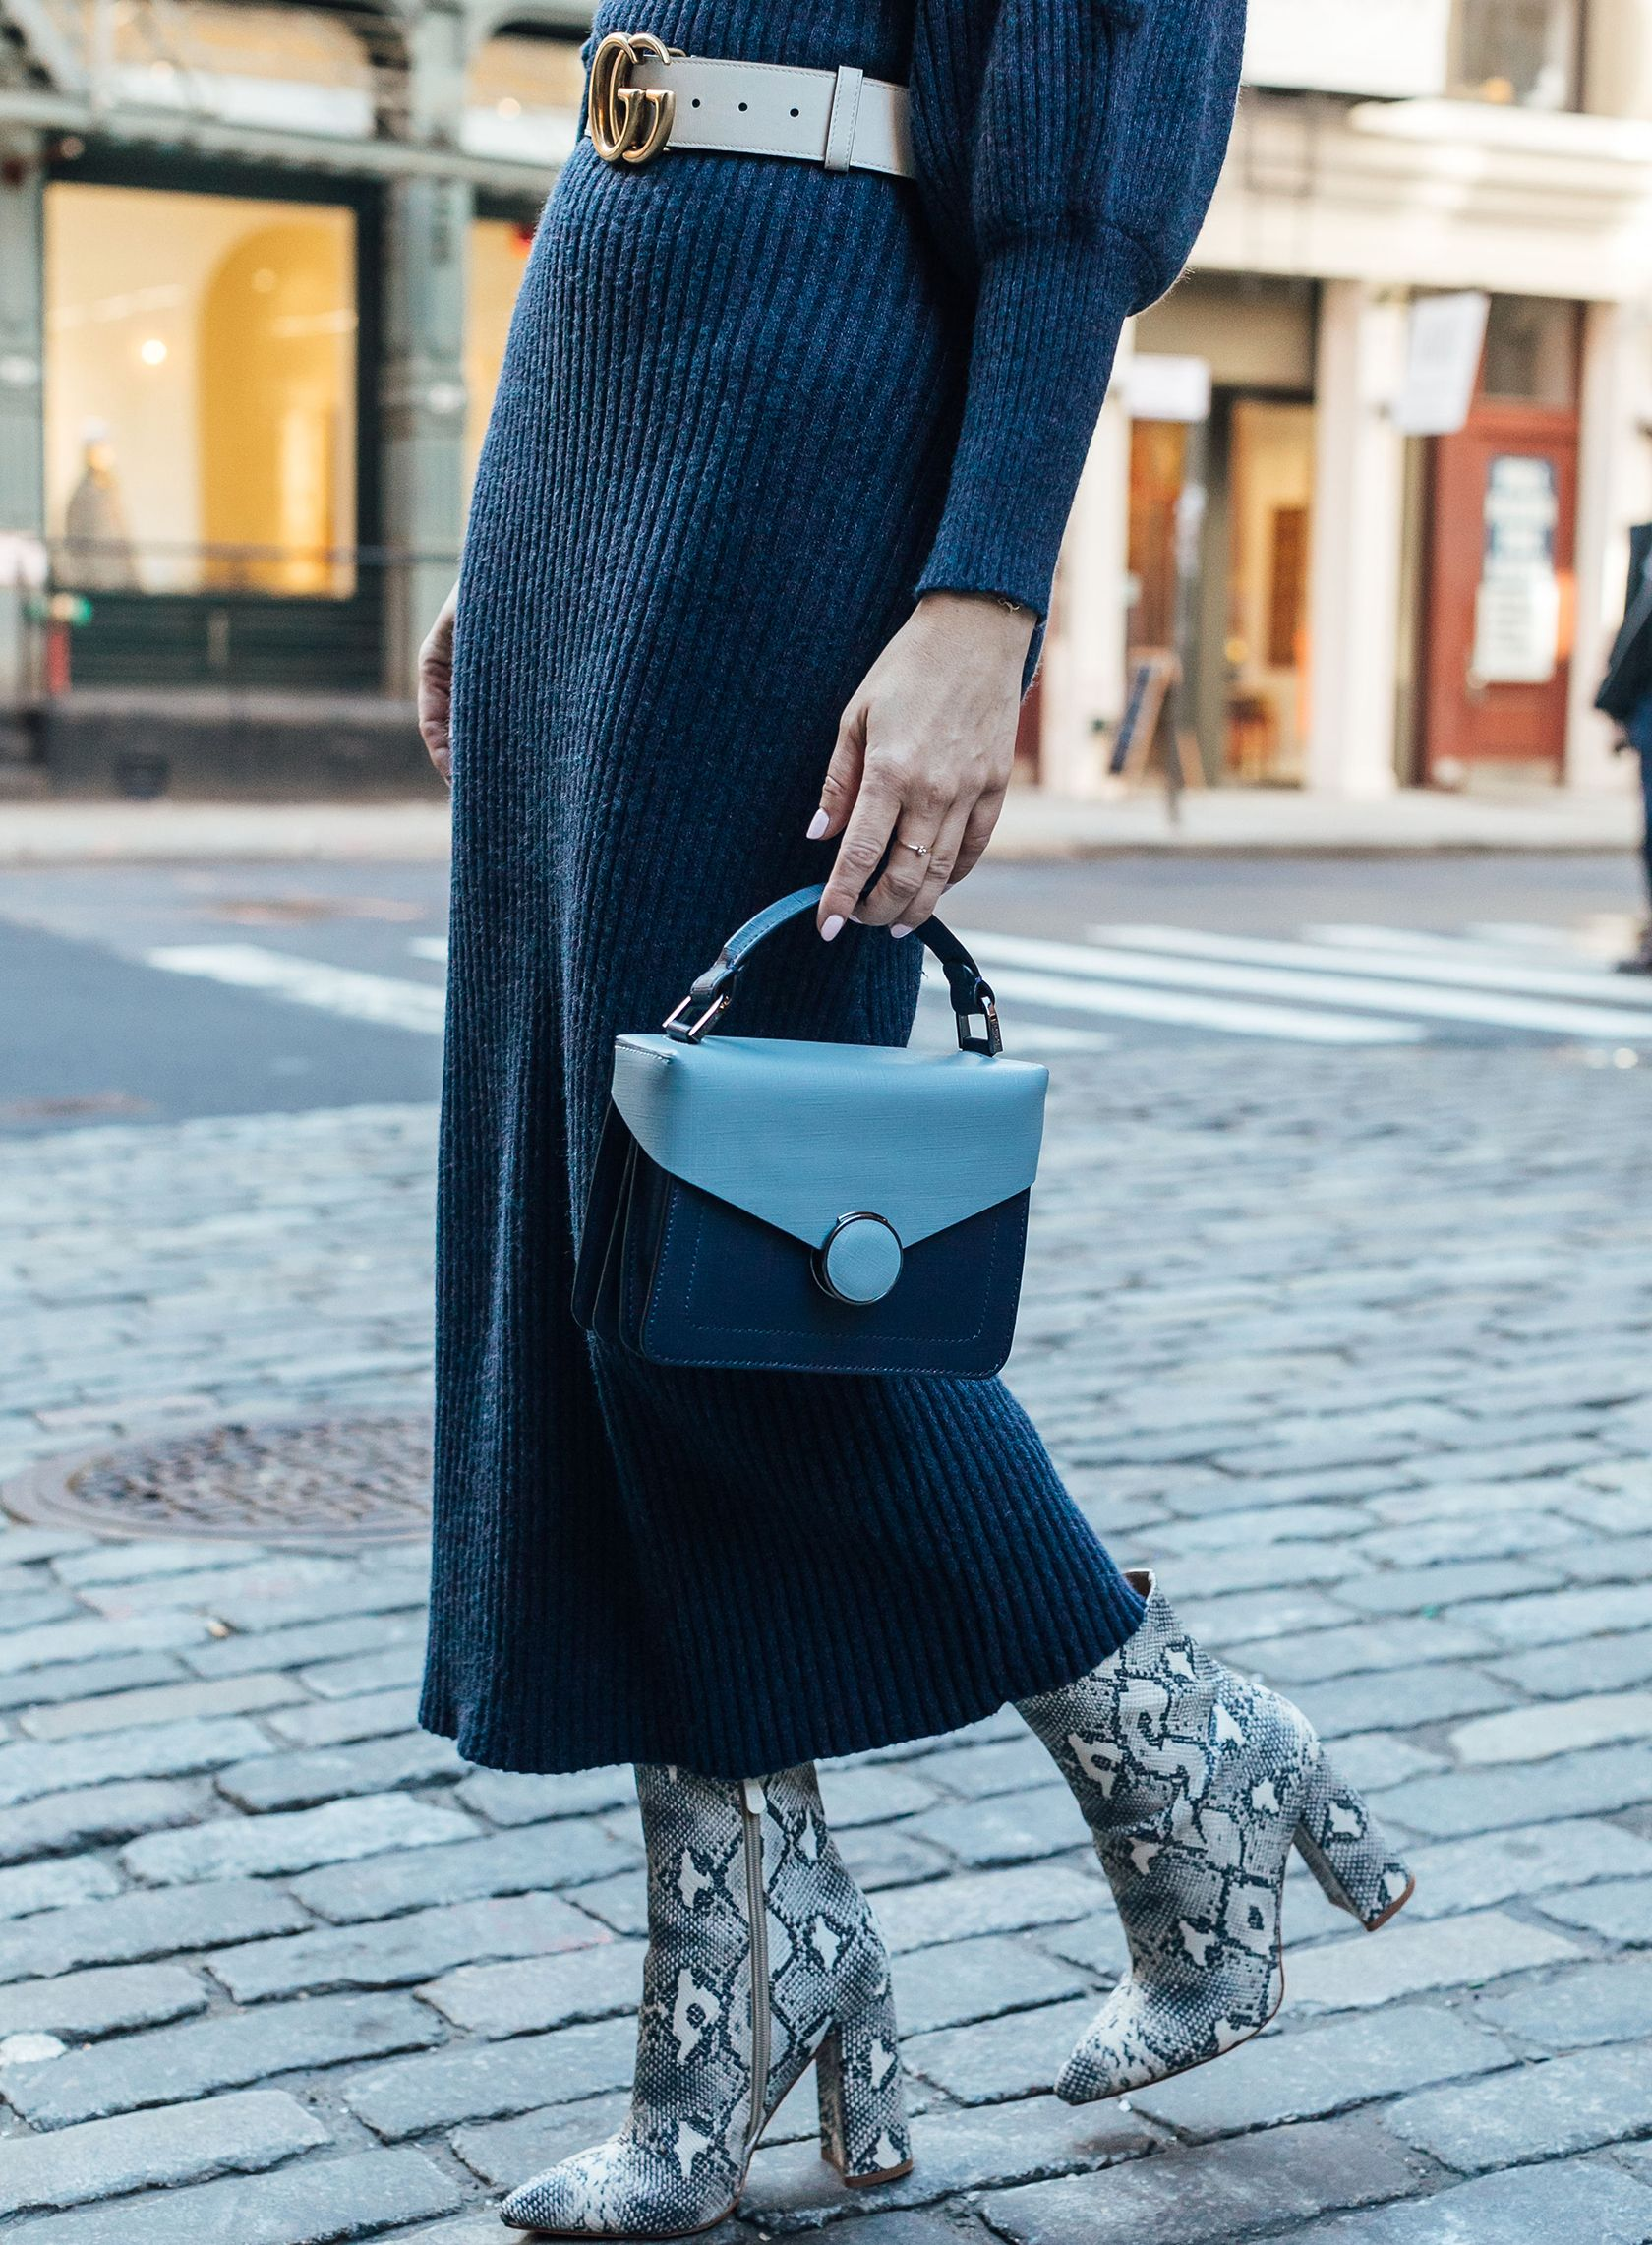 9d0d6e5761cc Sydne Style shows the best fashion week street style accessories in  snakeskin boots trend  snakeskin